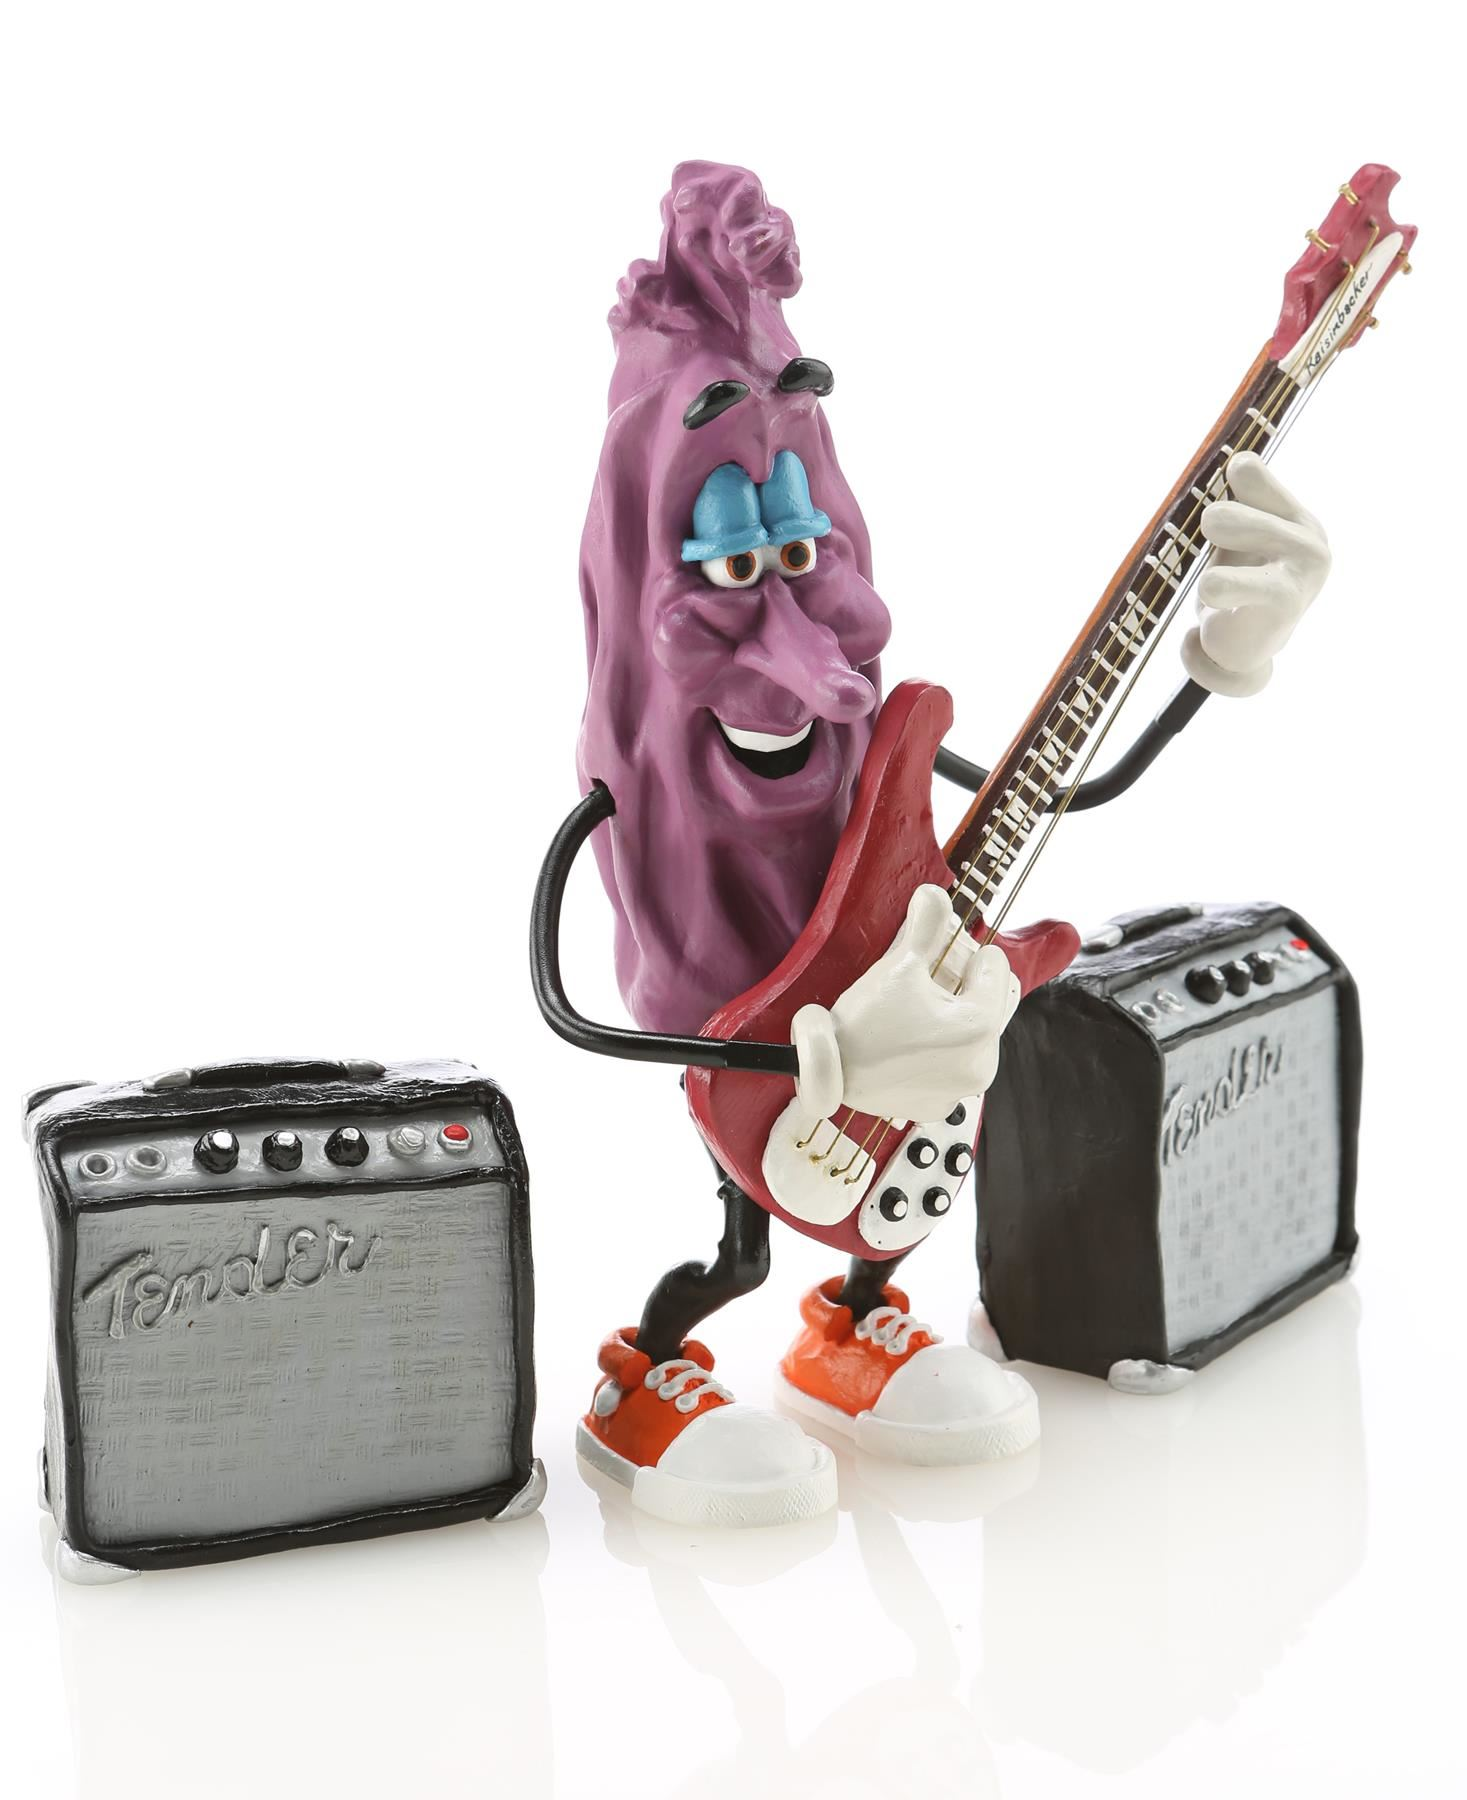 Stretch's California Raisin Puppet With Bass Guitar and Amps Replica Signed  By Will Vinton - CALIFOR